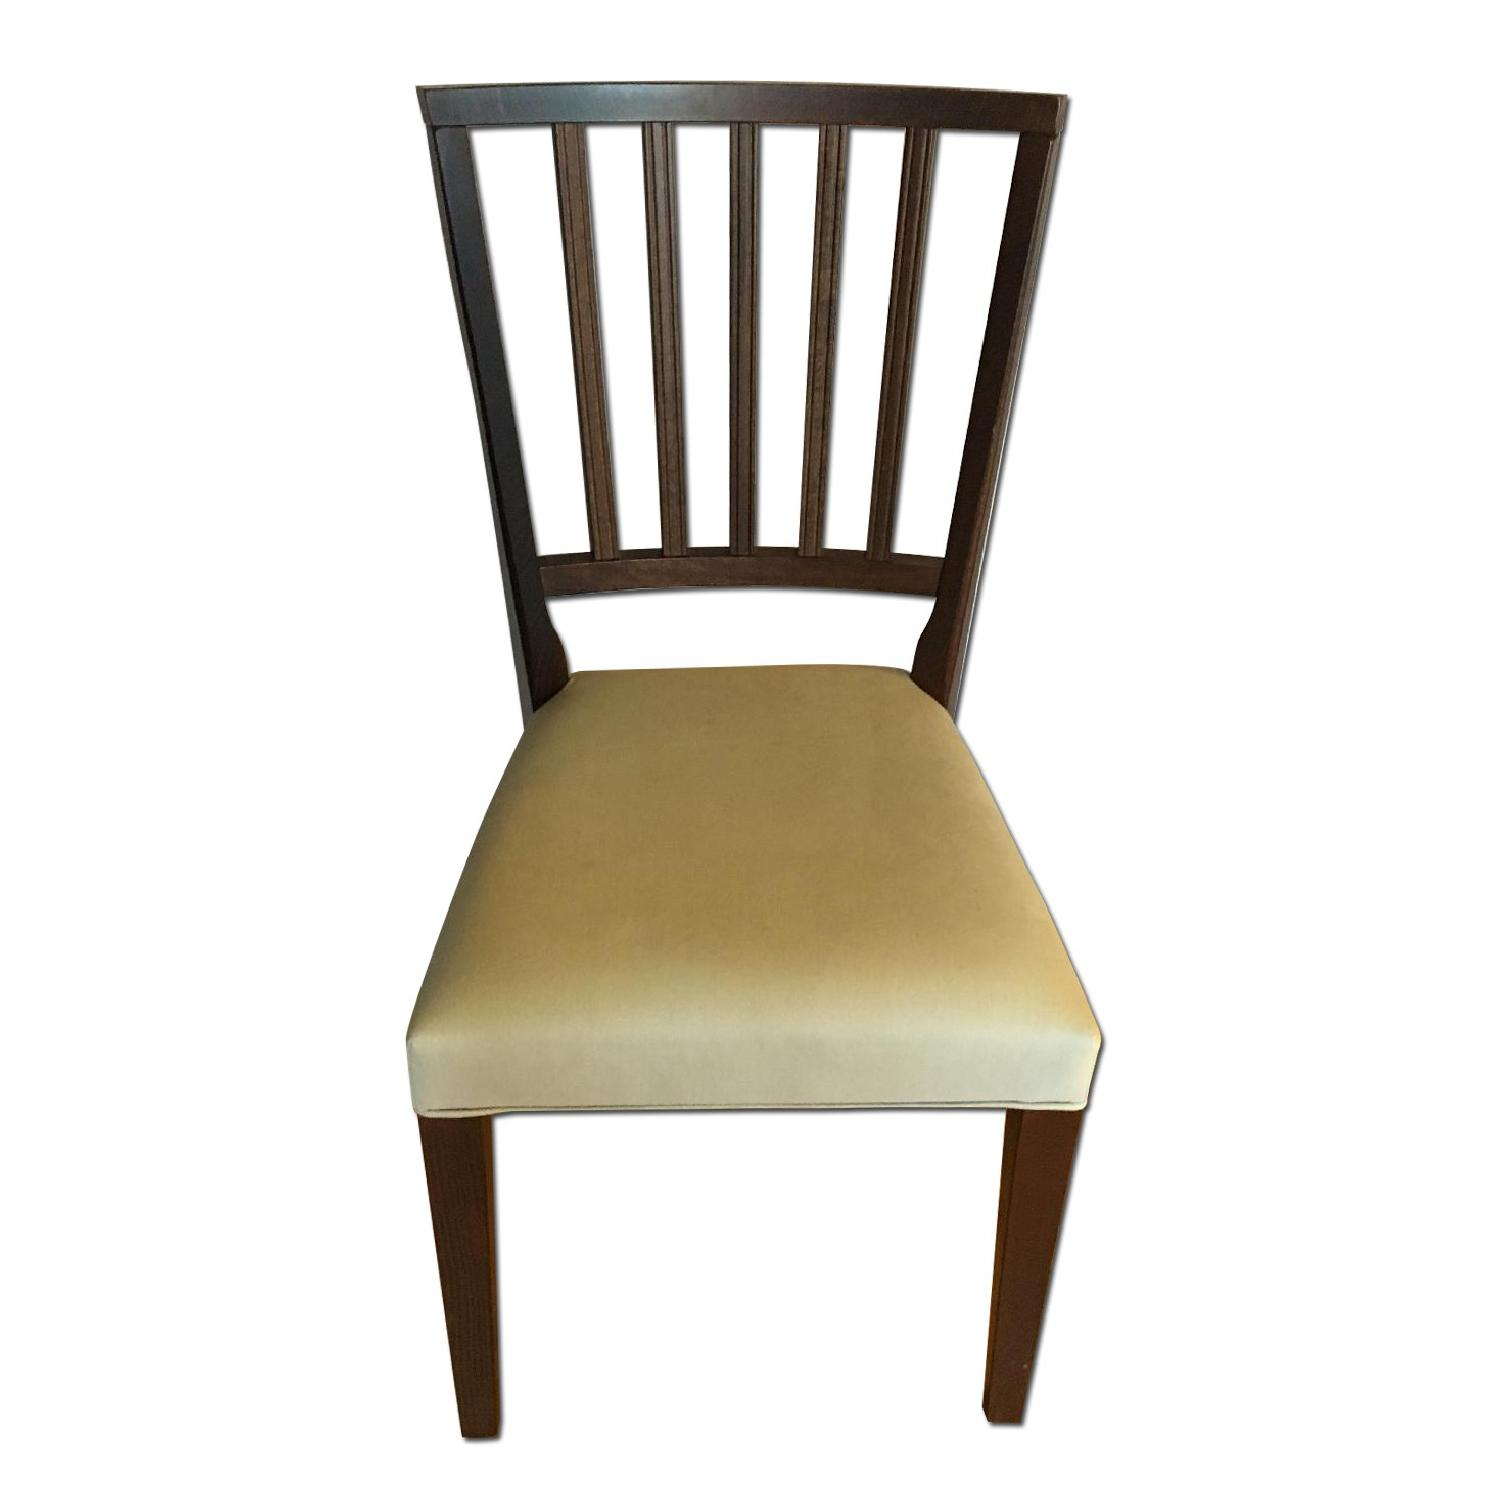 Pottery Barn Dining Chairs - image-0